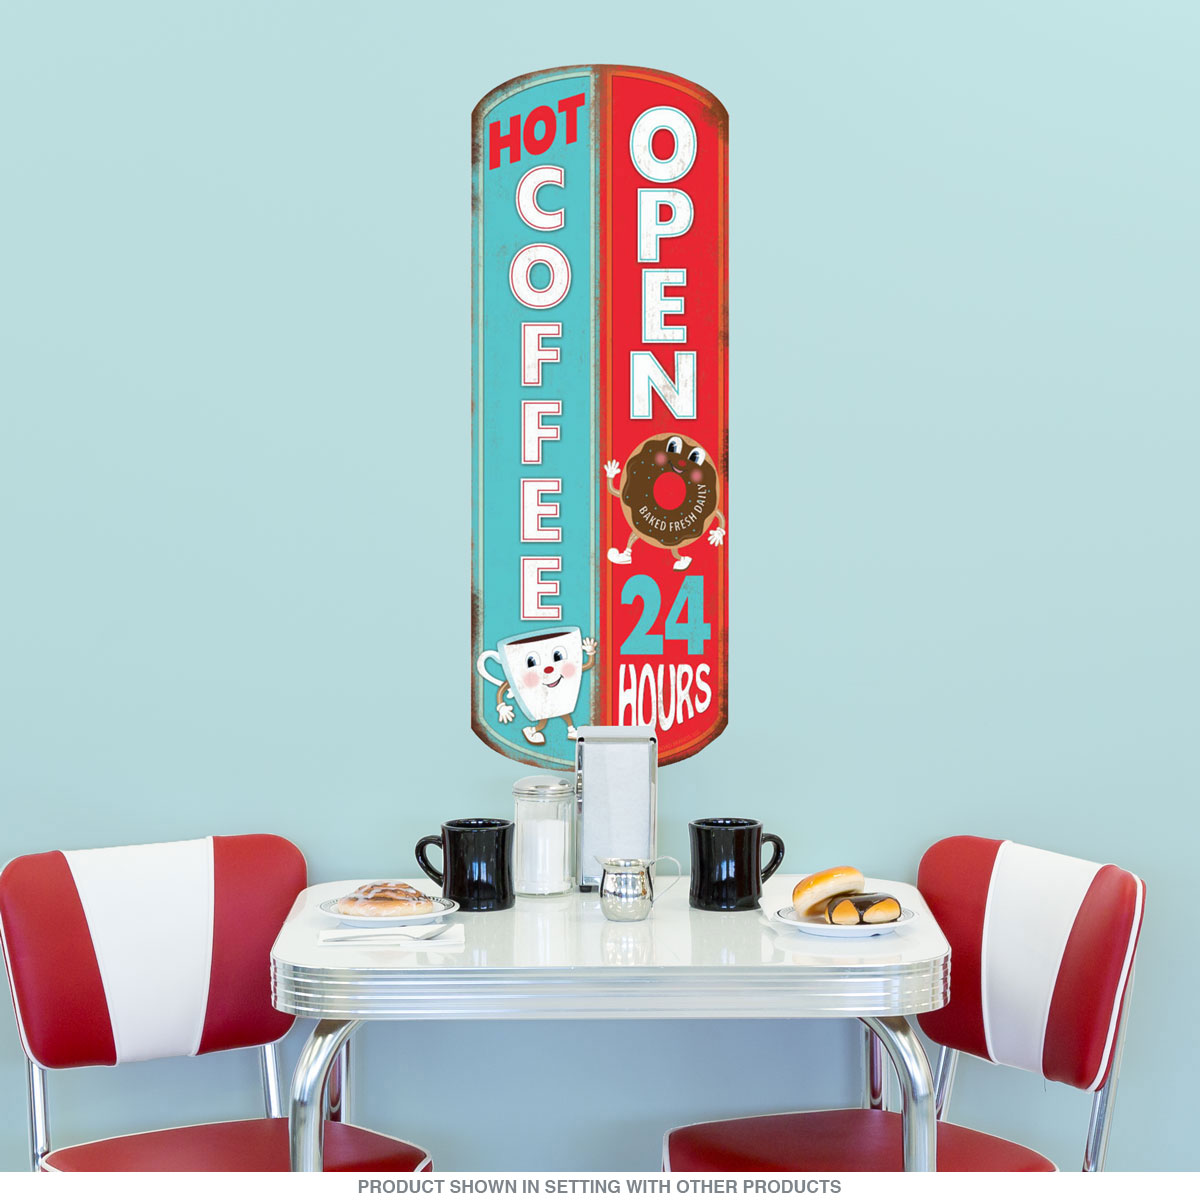 Hot Coffee Open 24 Hours Diner Wall Decal | Kitchen Decor ...